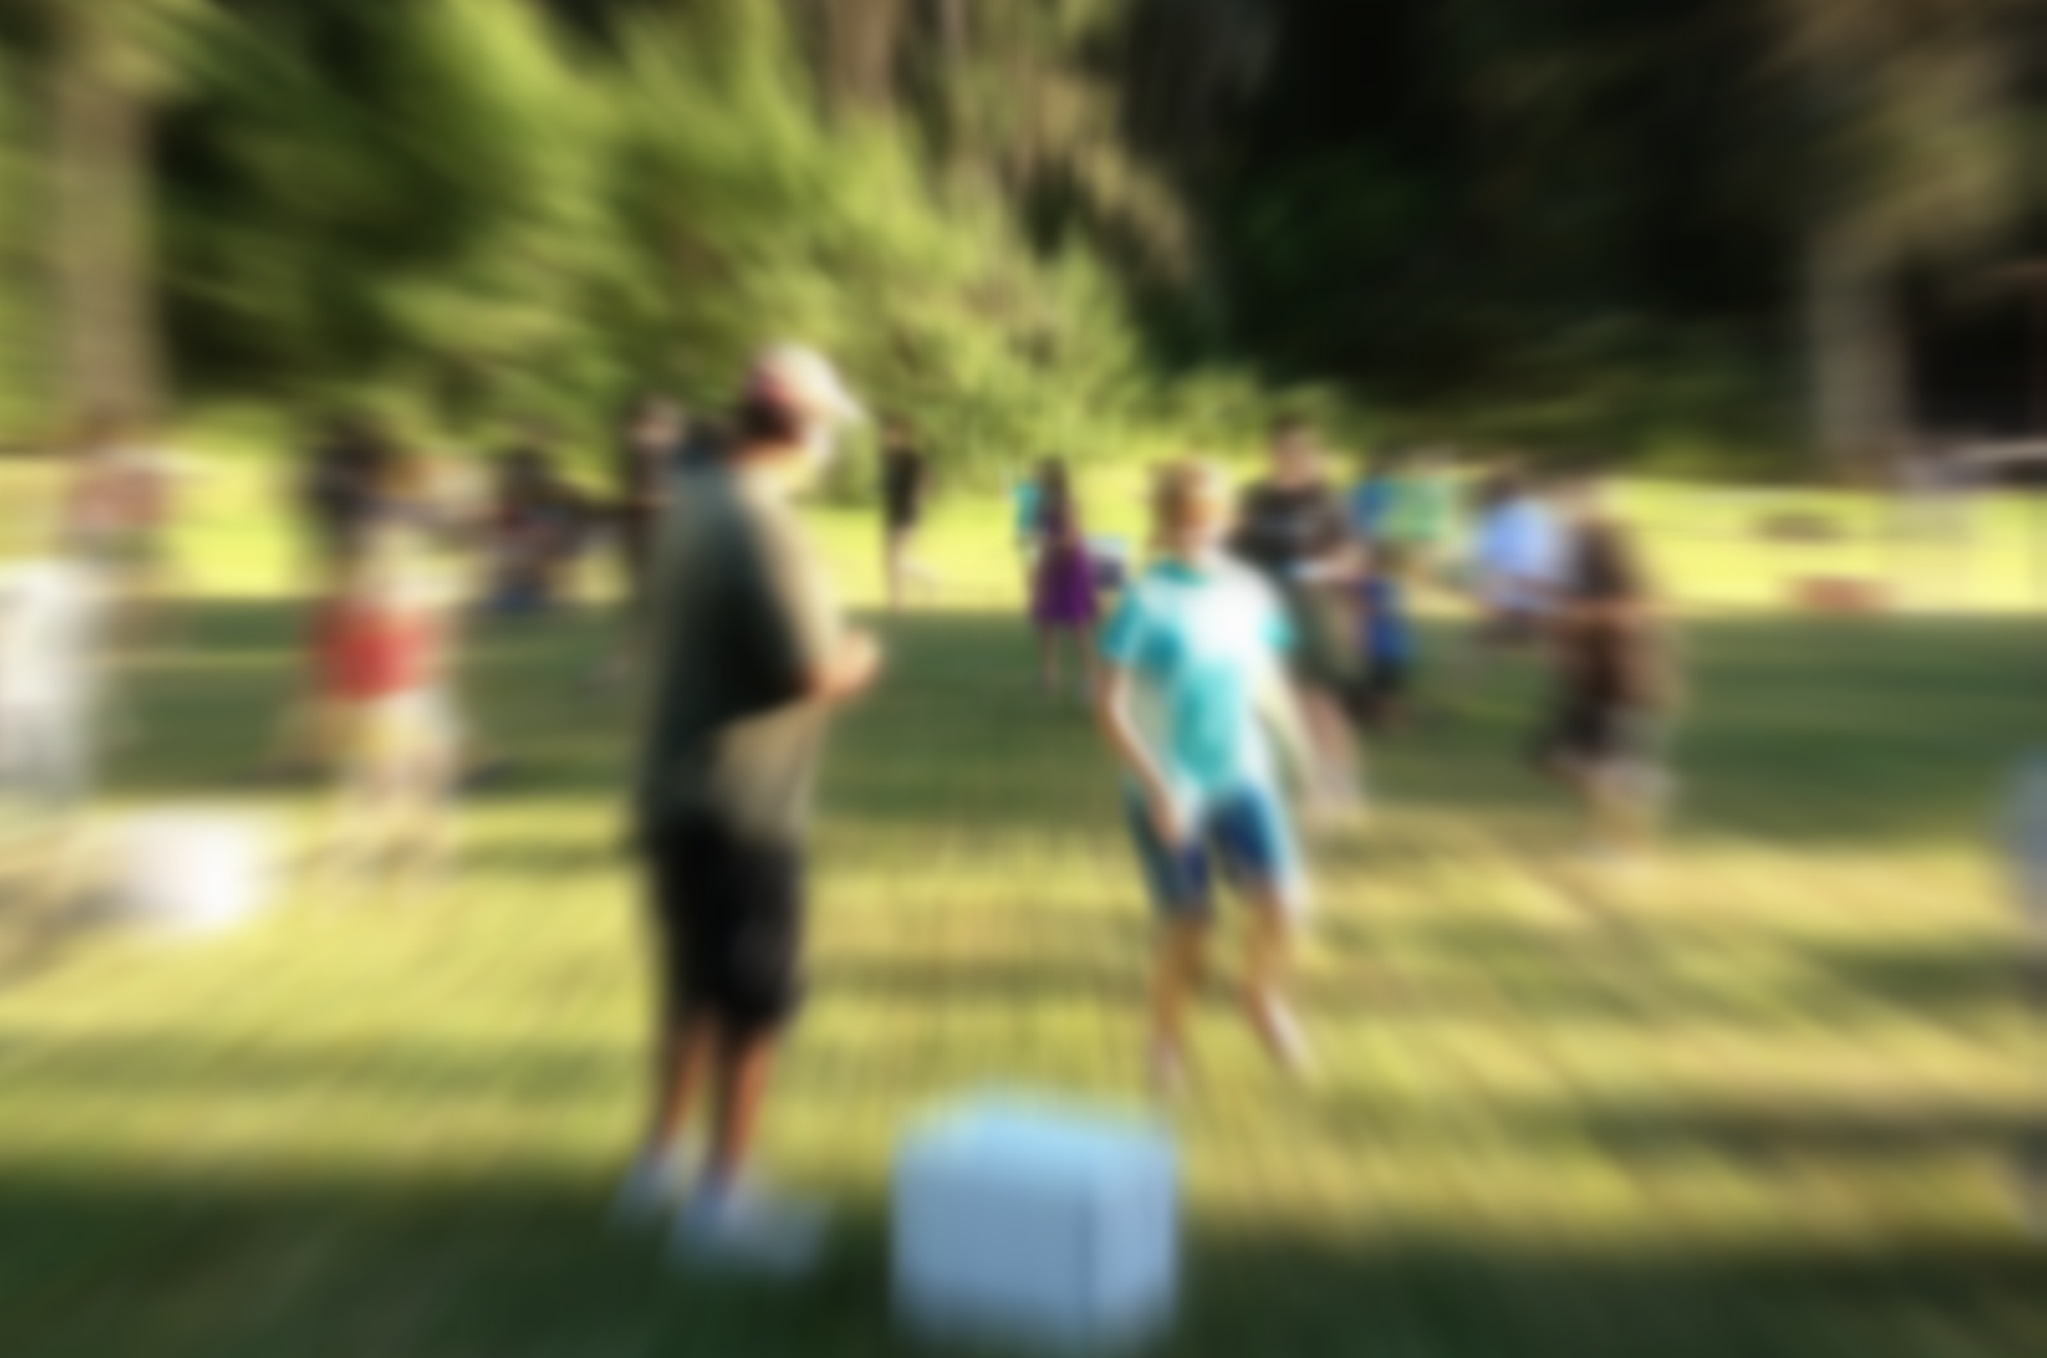 Picture of a group of people playing a game in the park. Because the picture is very blurred, none of the people are recognizable.